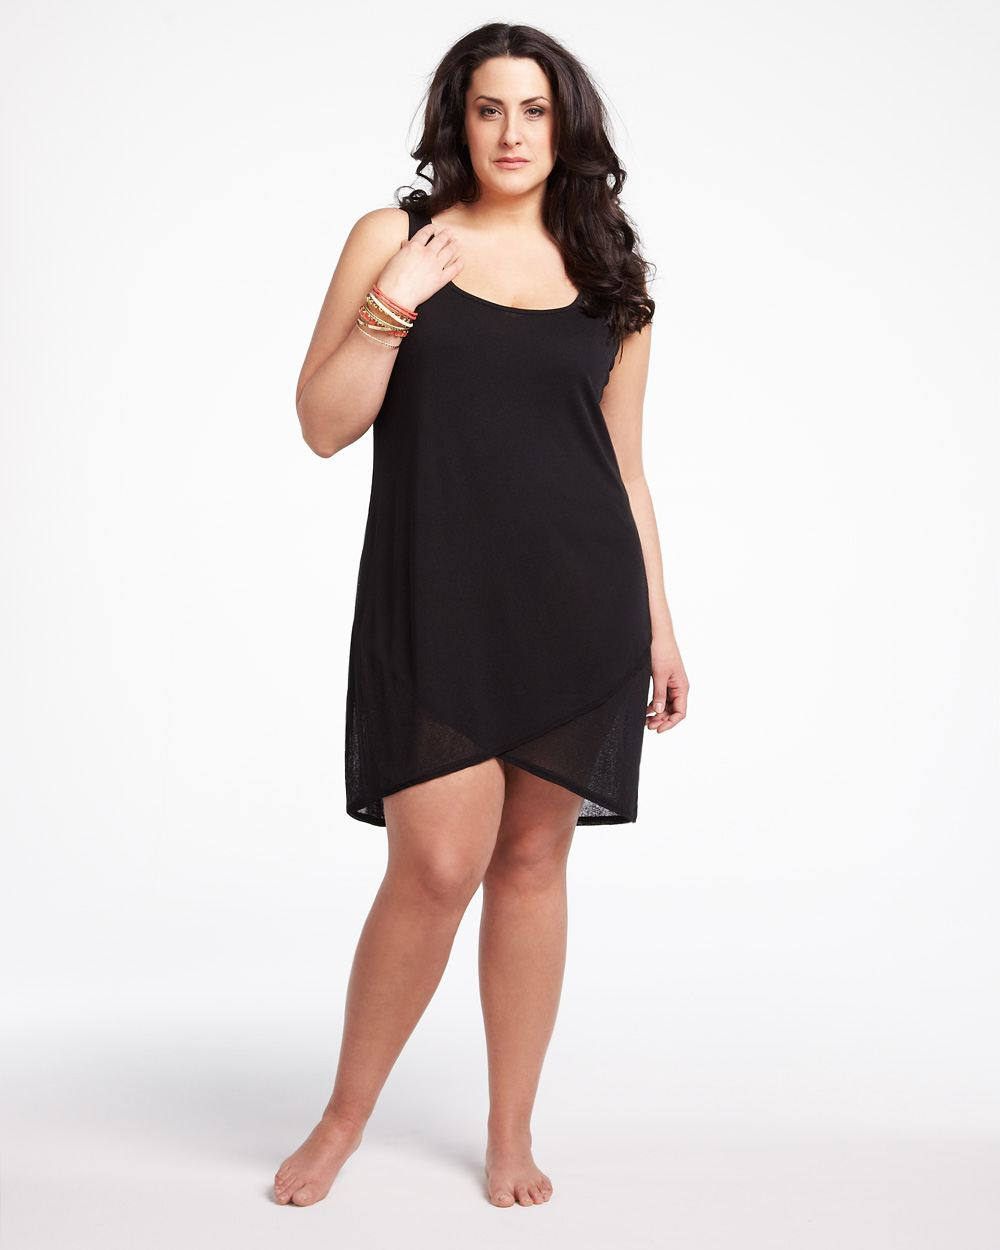 Plus size dress in black plus size skater dress dressed for How to dress up a black dress for a wedding